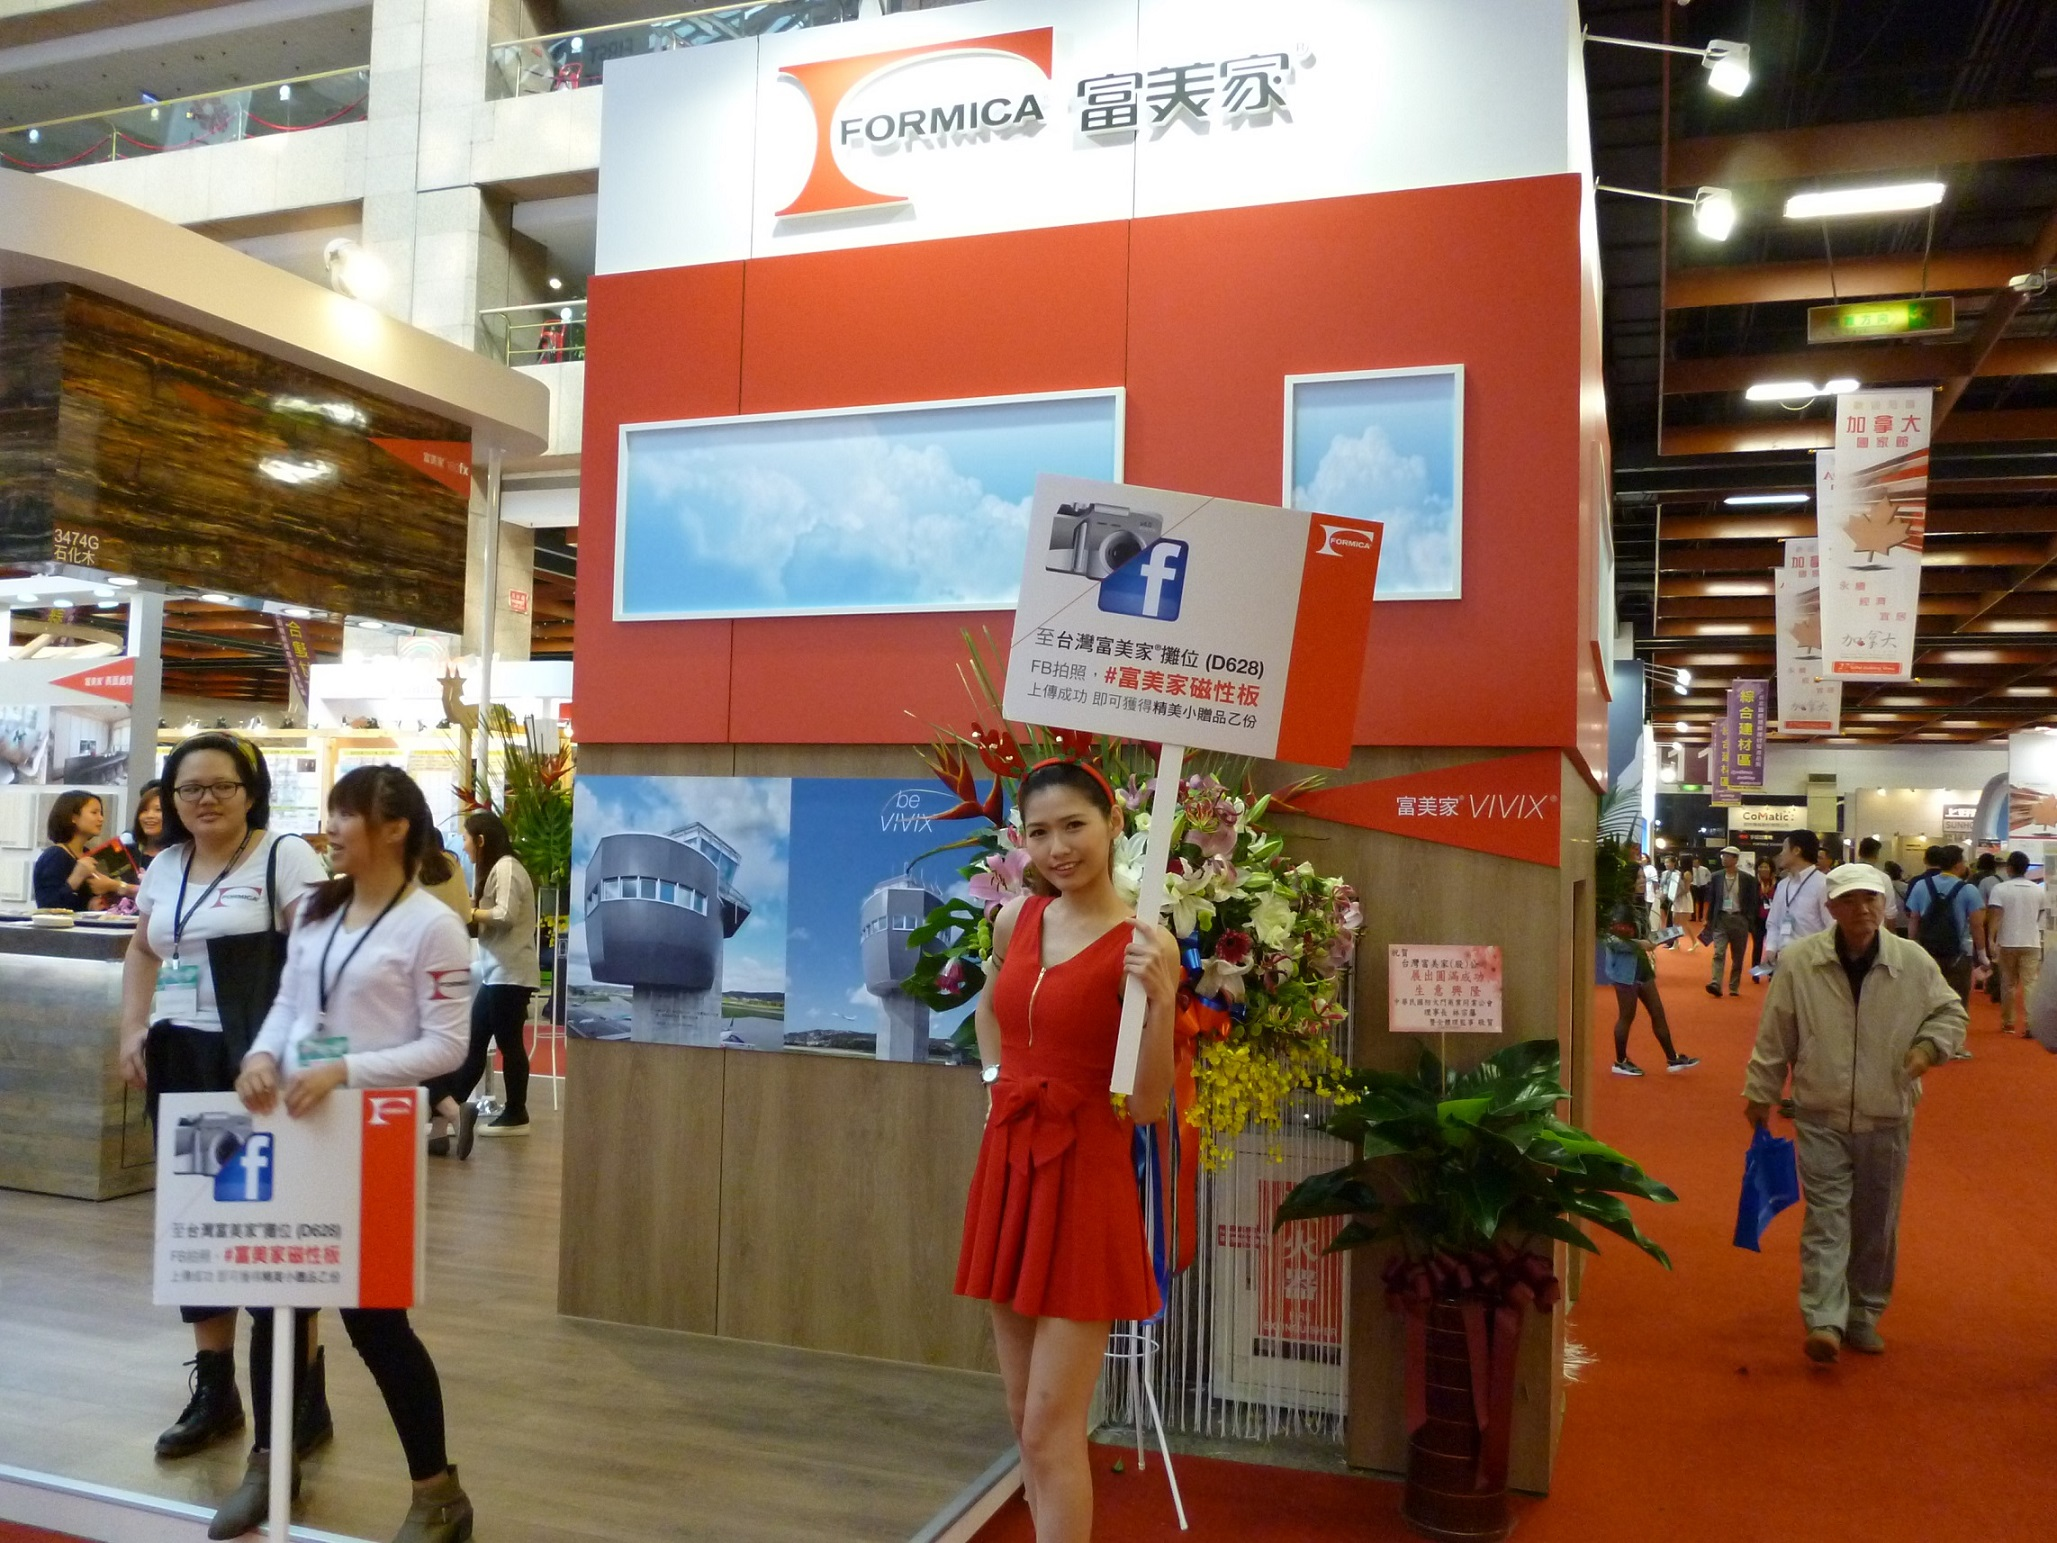 Magnetic wall decors expected to catch on: Formica Taiwan